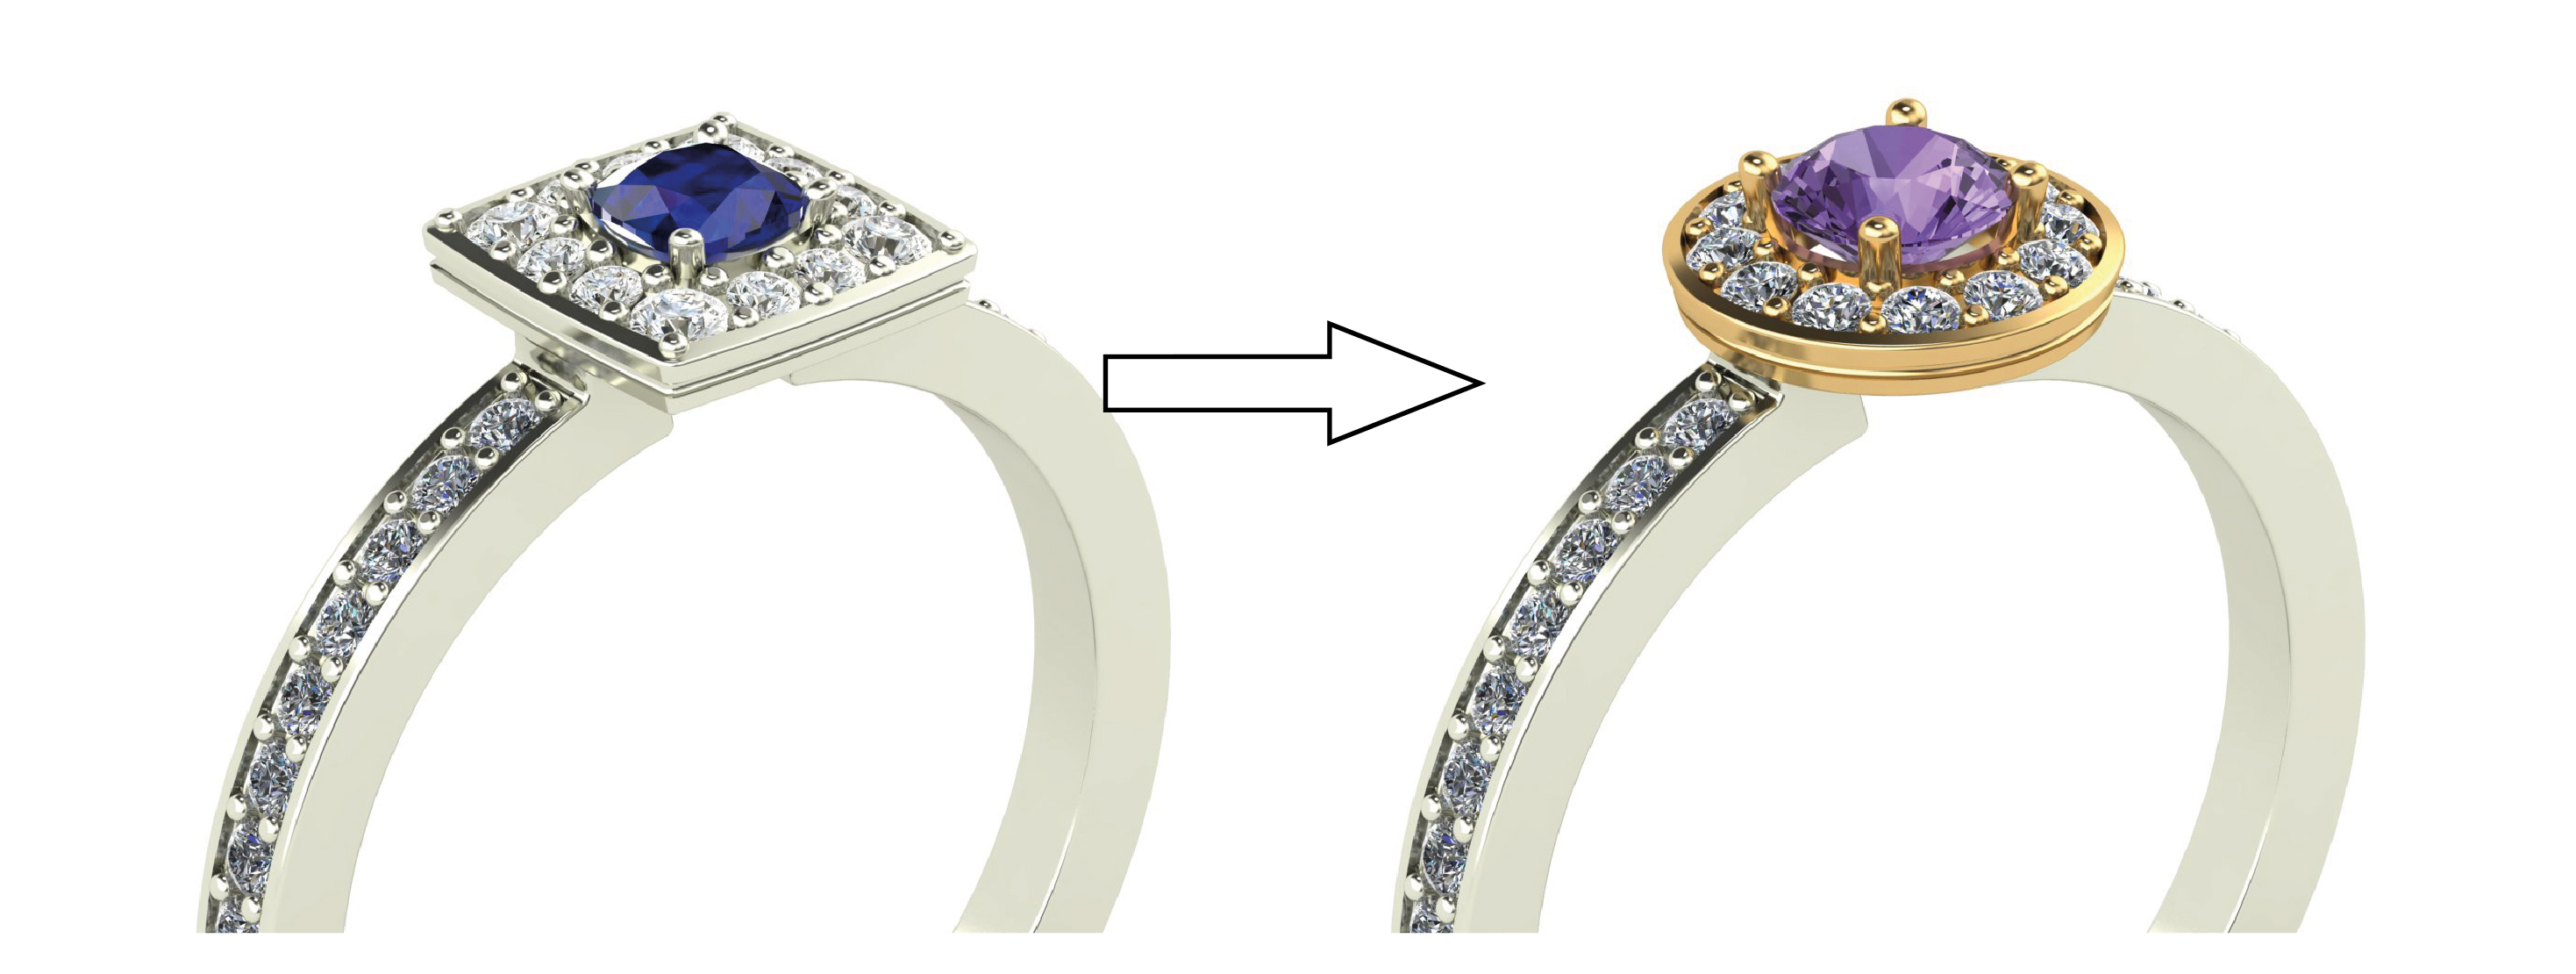 changing the top halo shape on the ring - custom wedding ring design